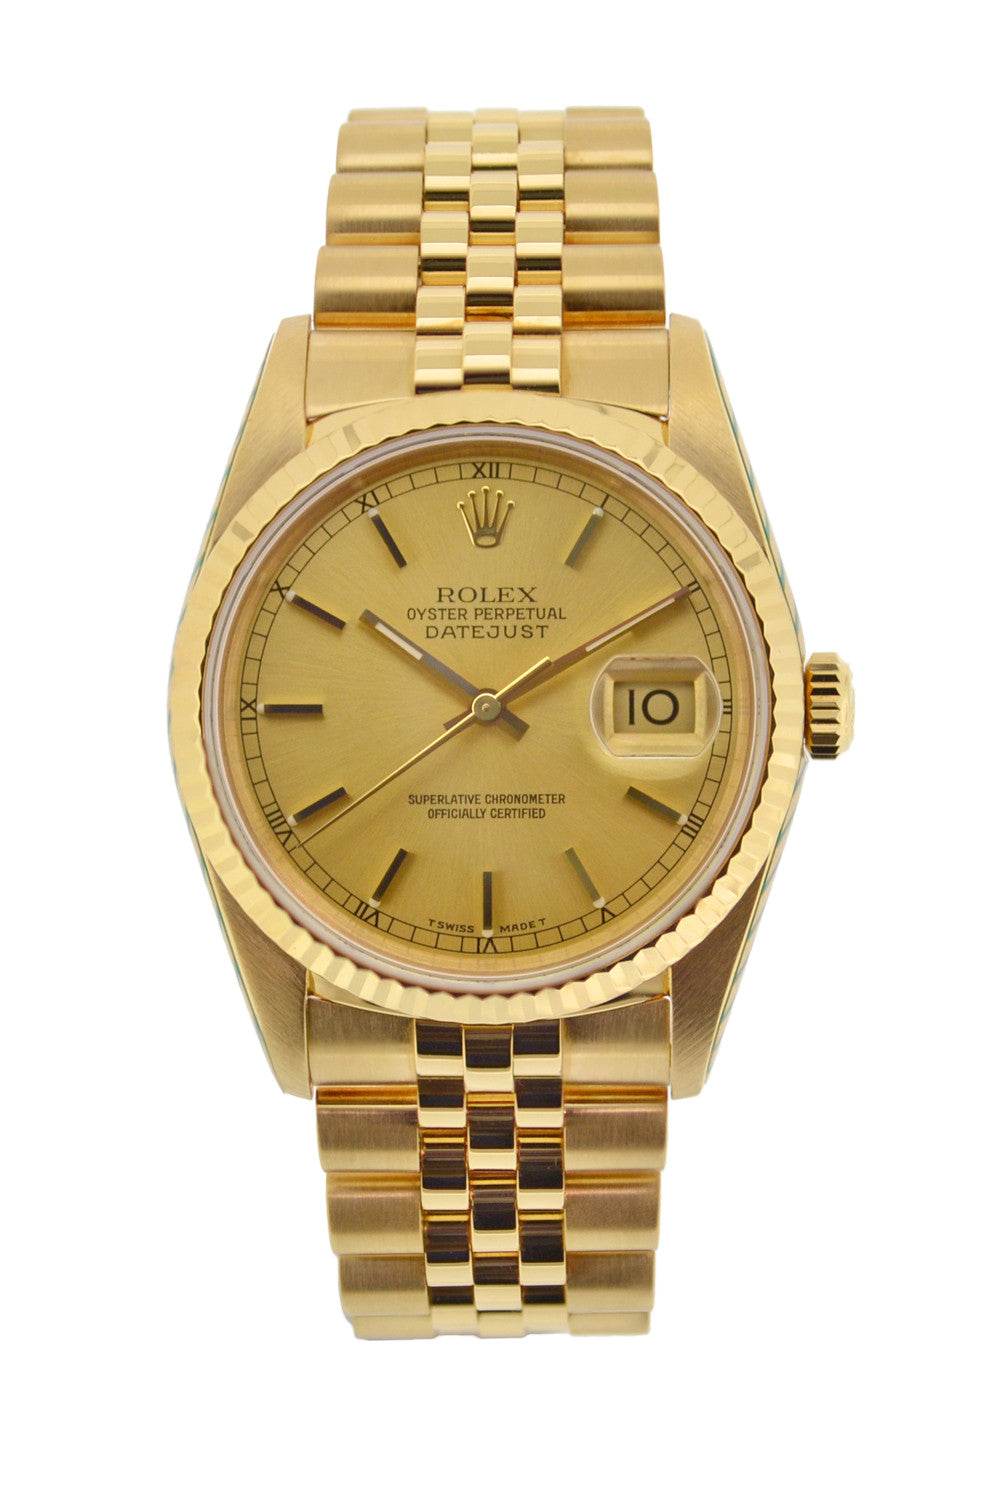 Rolex Oyster Datejust 18k Gold Automatic Watch 16238